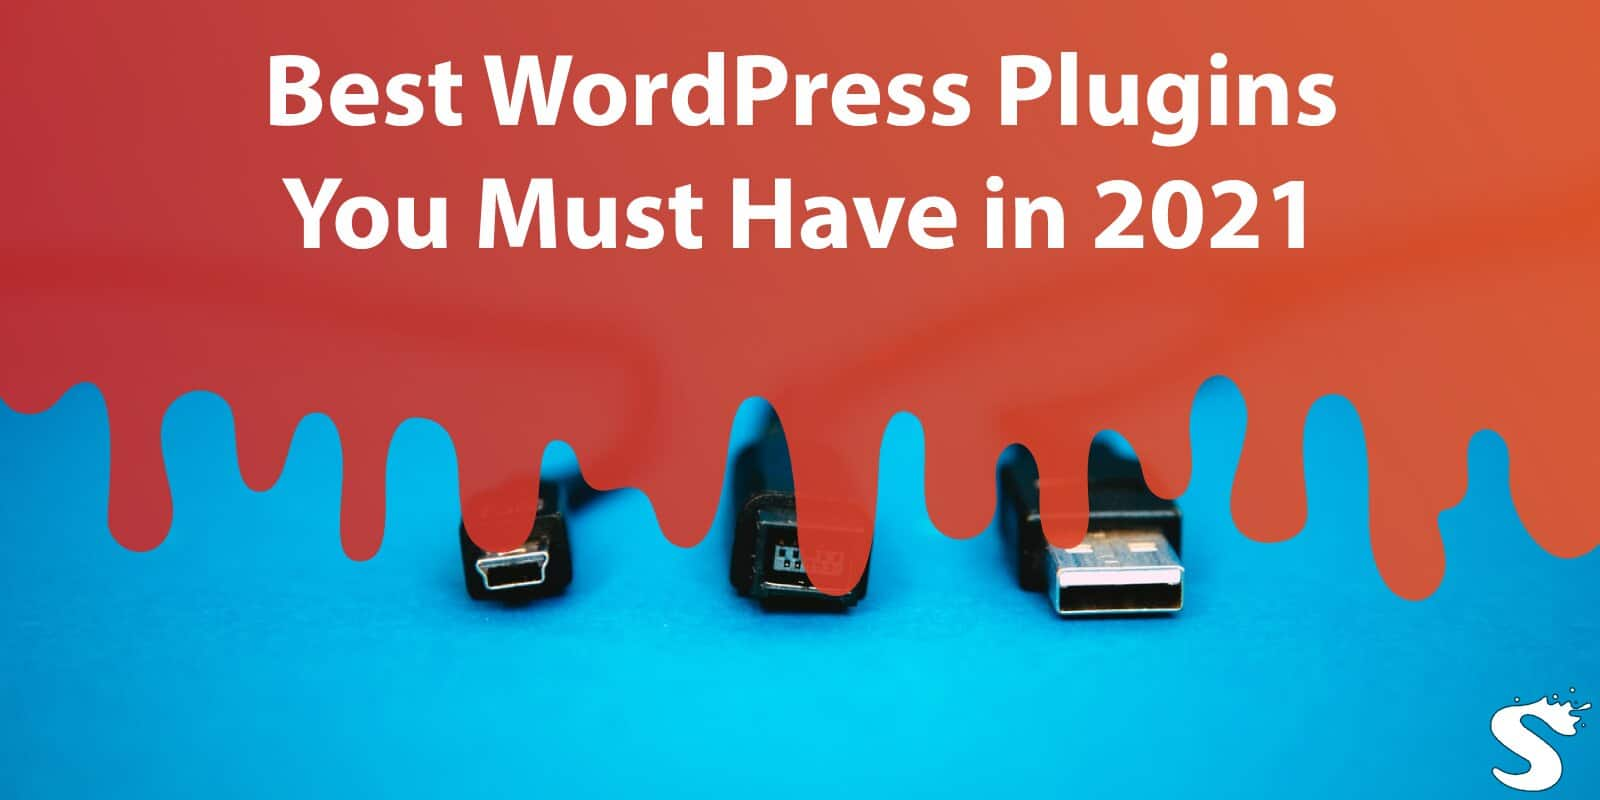 Best WordPress Plugins You Must Have in 2021